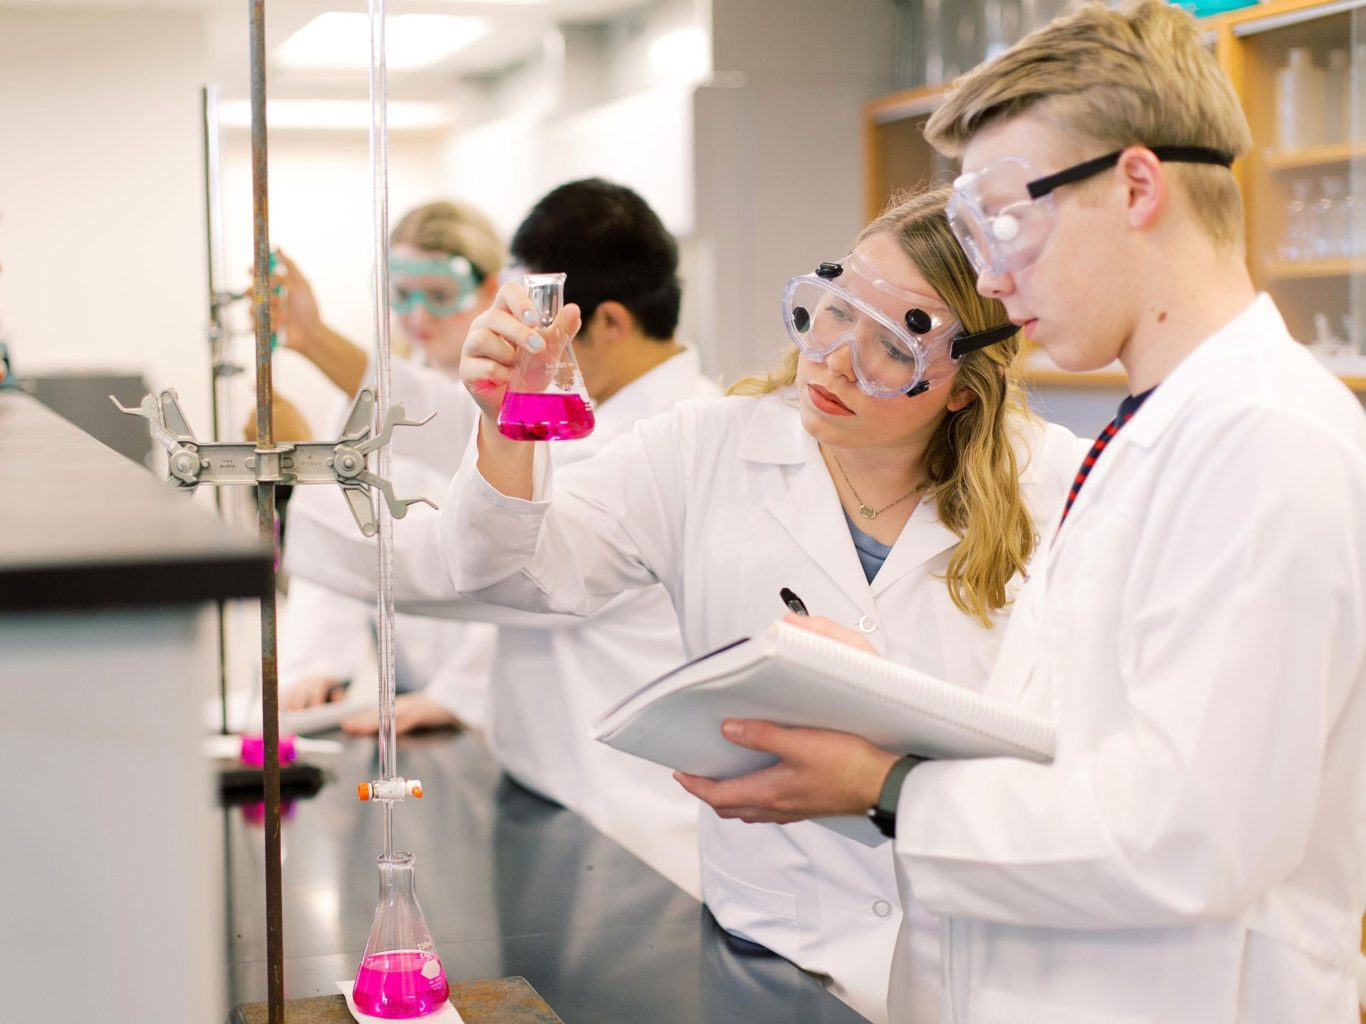 OC students in lab with beakers